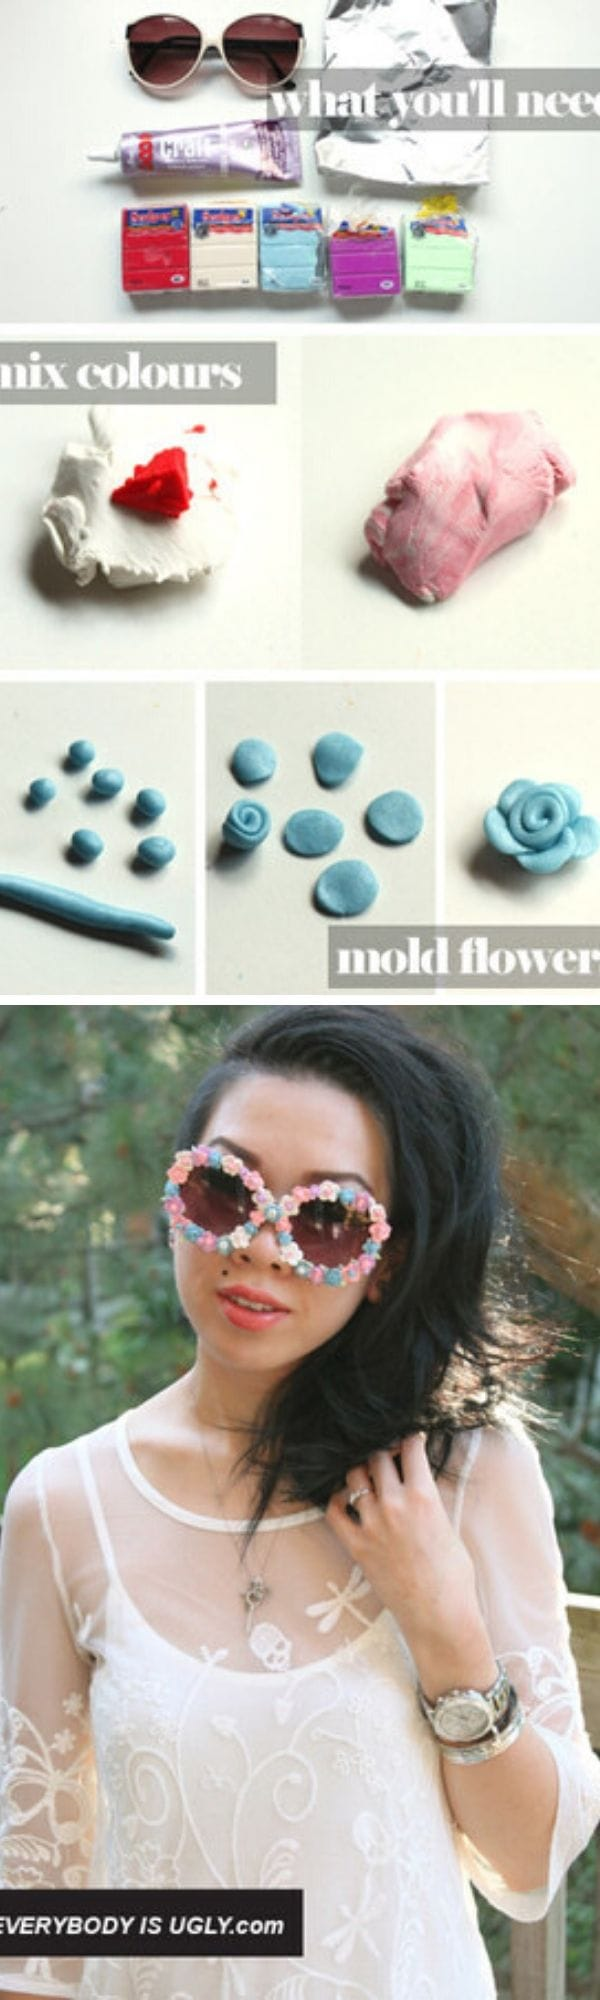 DIY Fully Floral Sunglasses